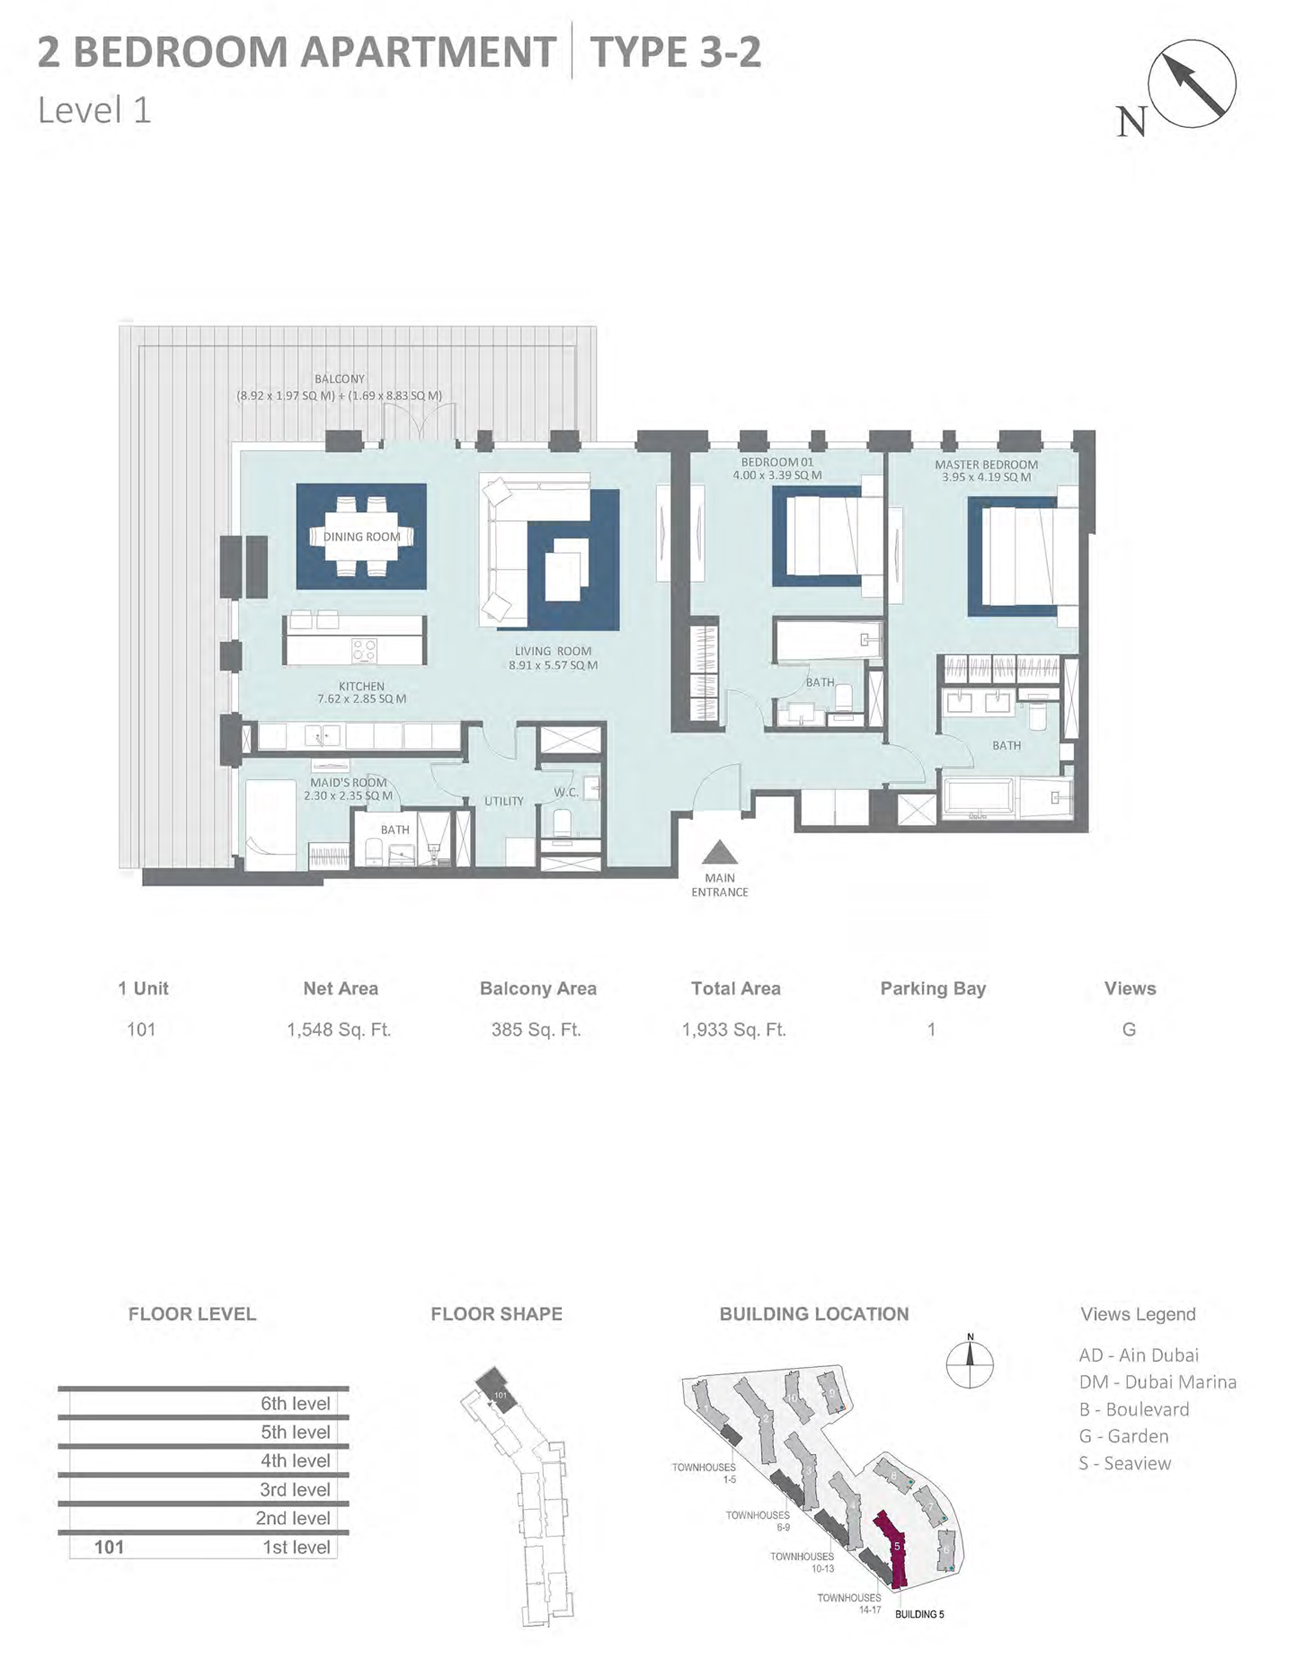 Building 5 - 2 Bedroom Type 3-2 Level 1 , Size 1548    sq. ft.